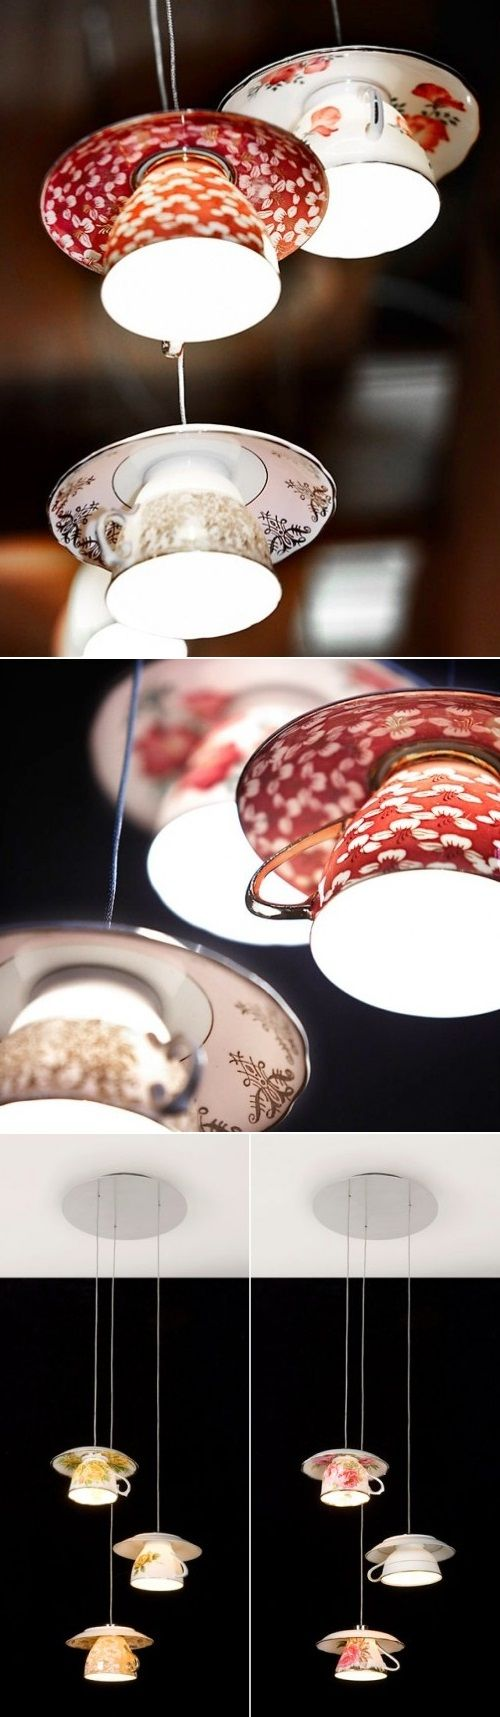 corpuri de iluminat facute acasa DIY lighting ideas 20